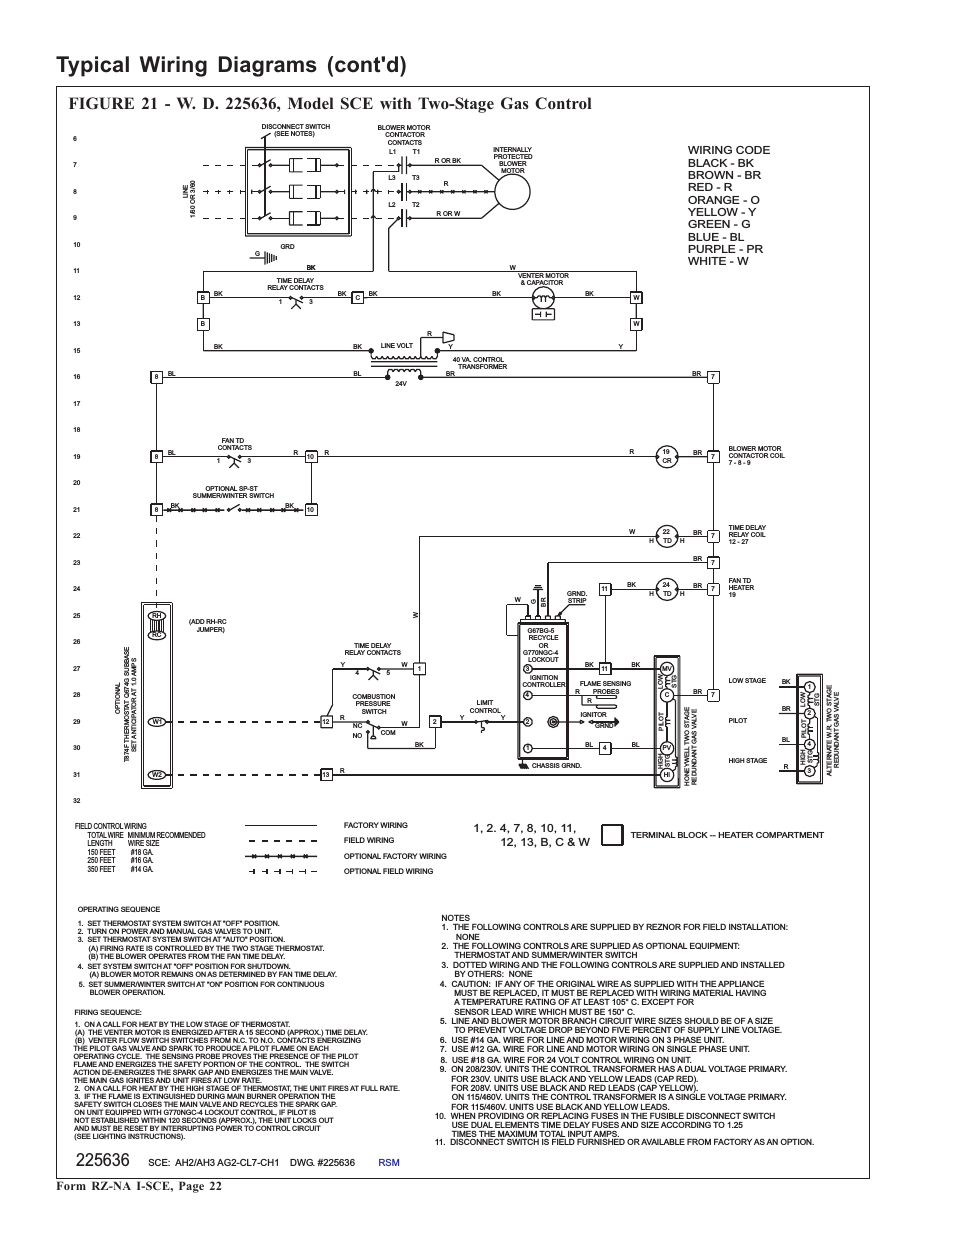 Reznor Heater Wiring Diagram - Wiring Diagram Blog - Reznor Heater Wiring Diagram